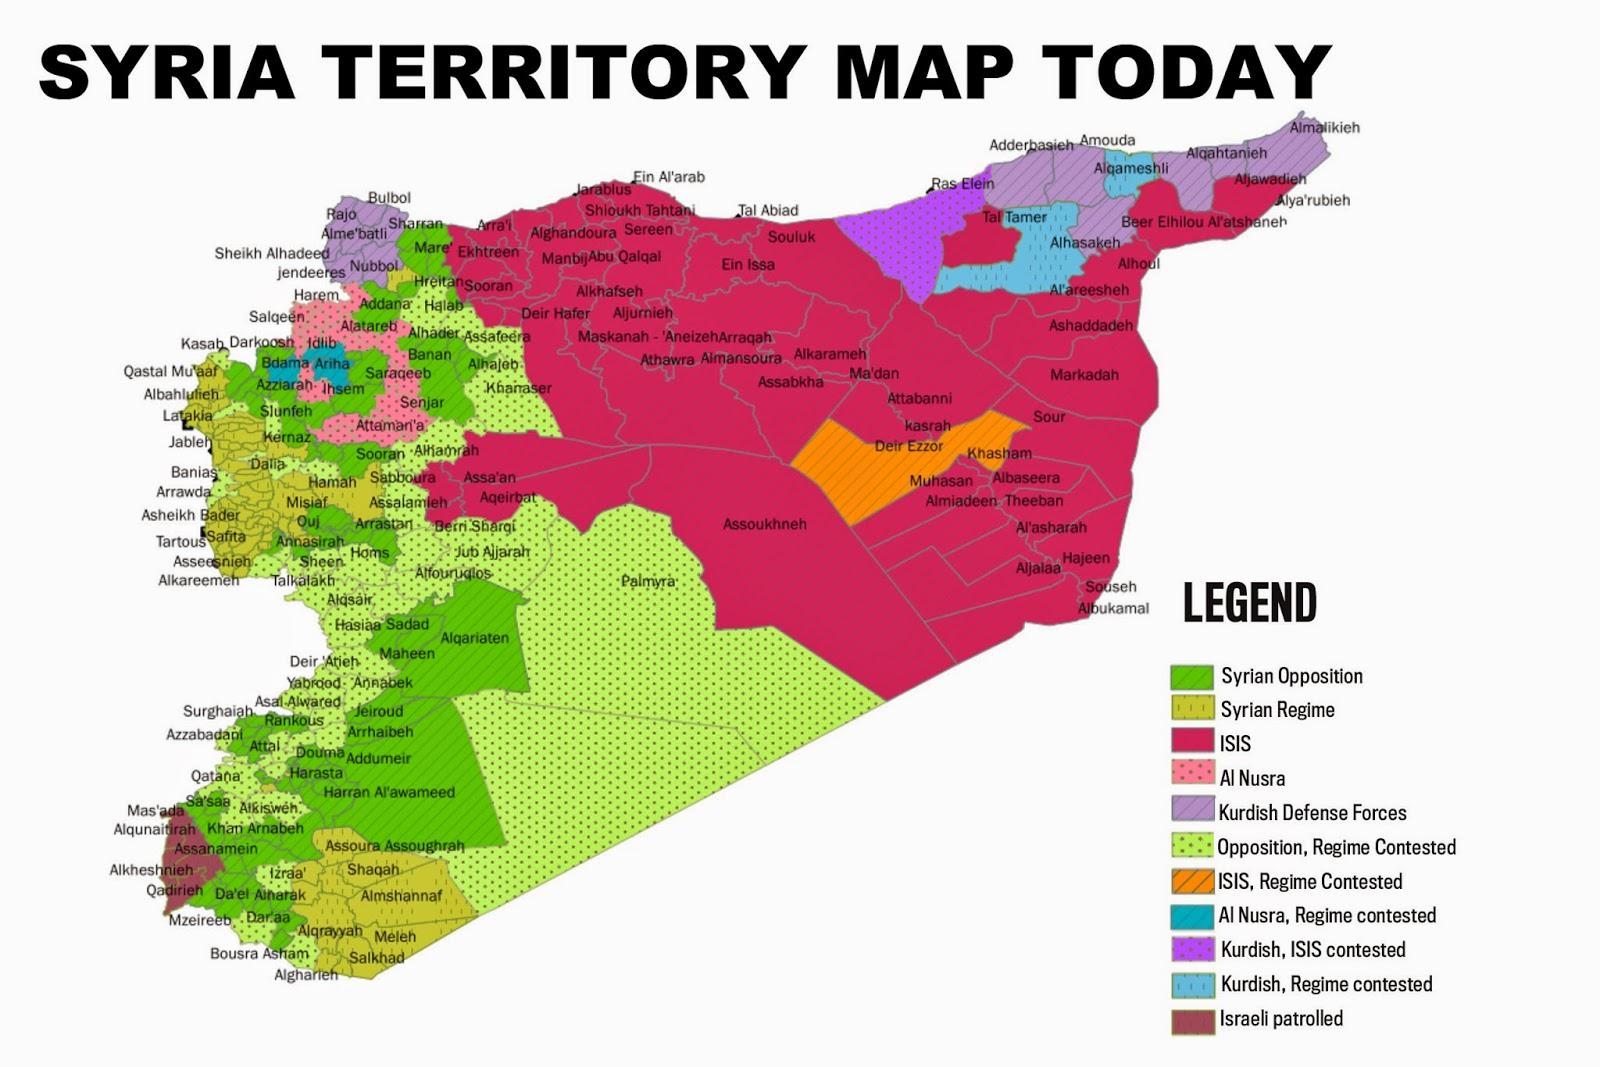 meanwhile also sirte in lybia is now under isis control this map show us the very dangerous situation in syria